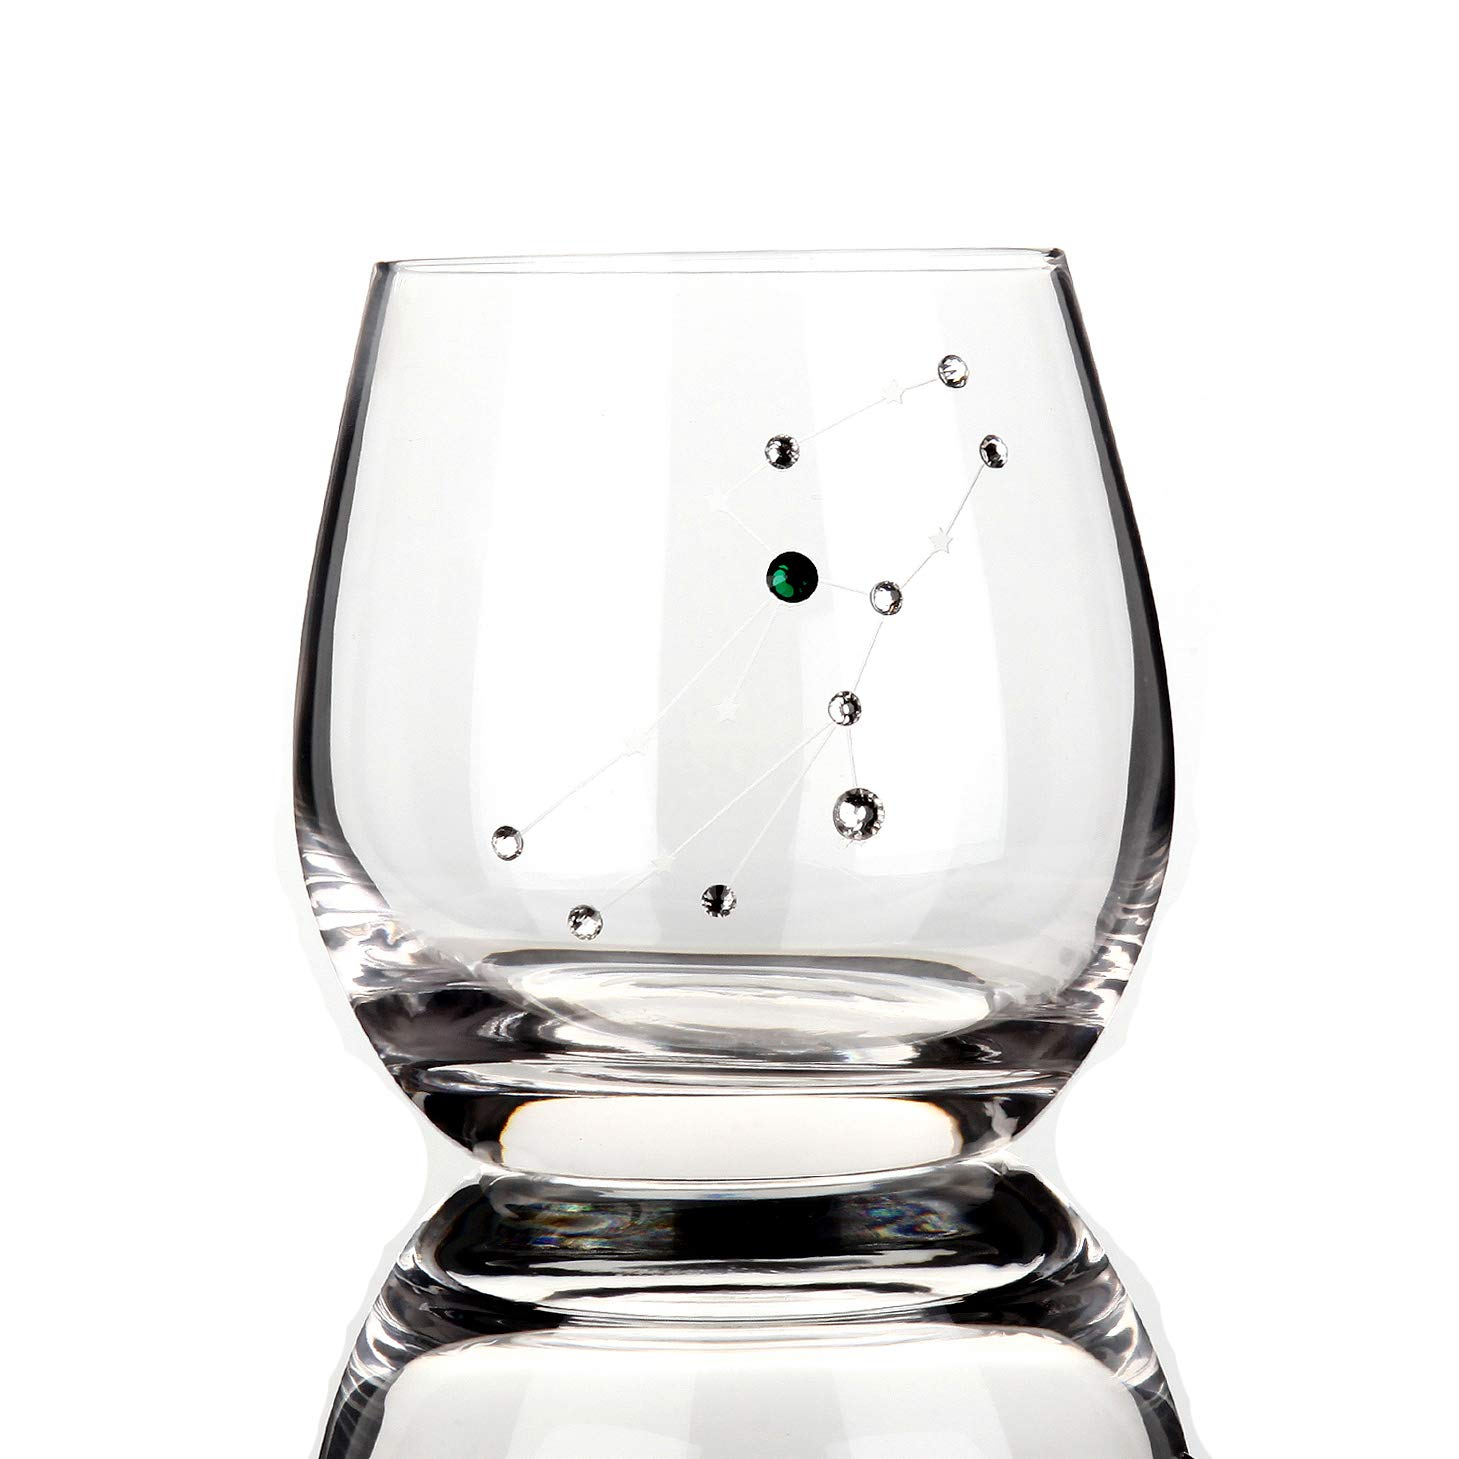 Detailz Zodiac Virgo Sign Wine Glasses Water Glasses,Constellation Acessories Gifts,11 Ounce (Virgo)